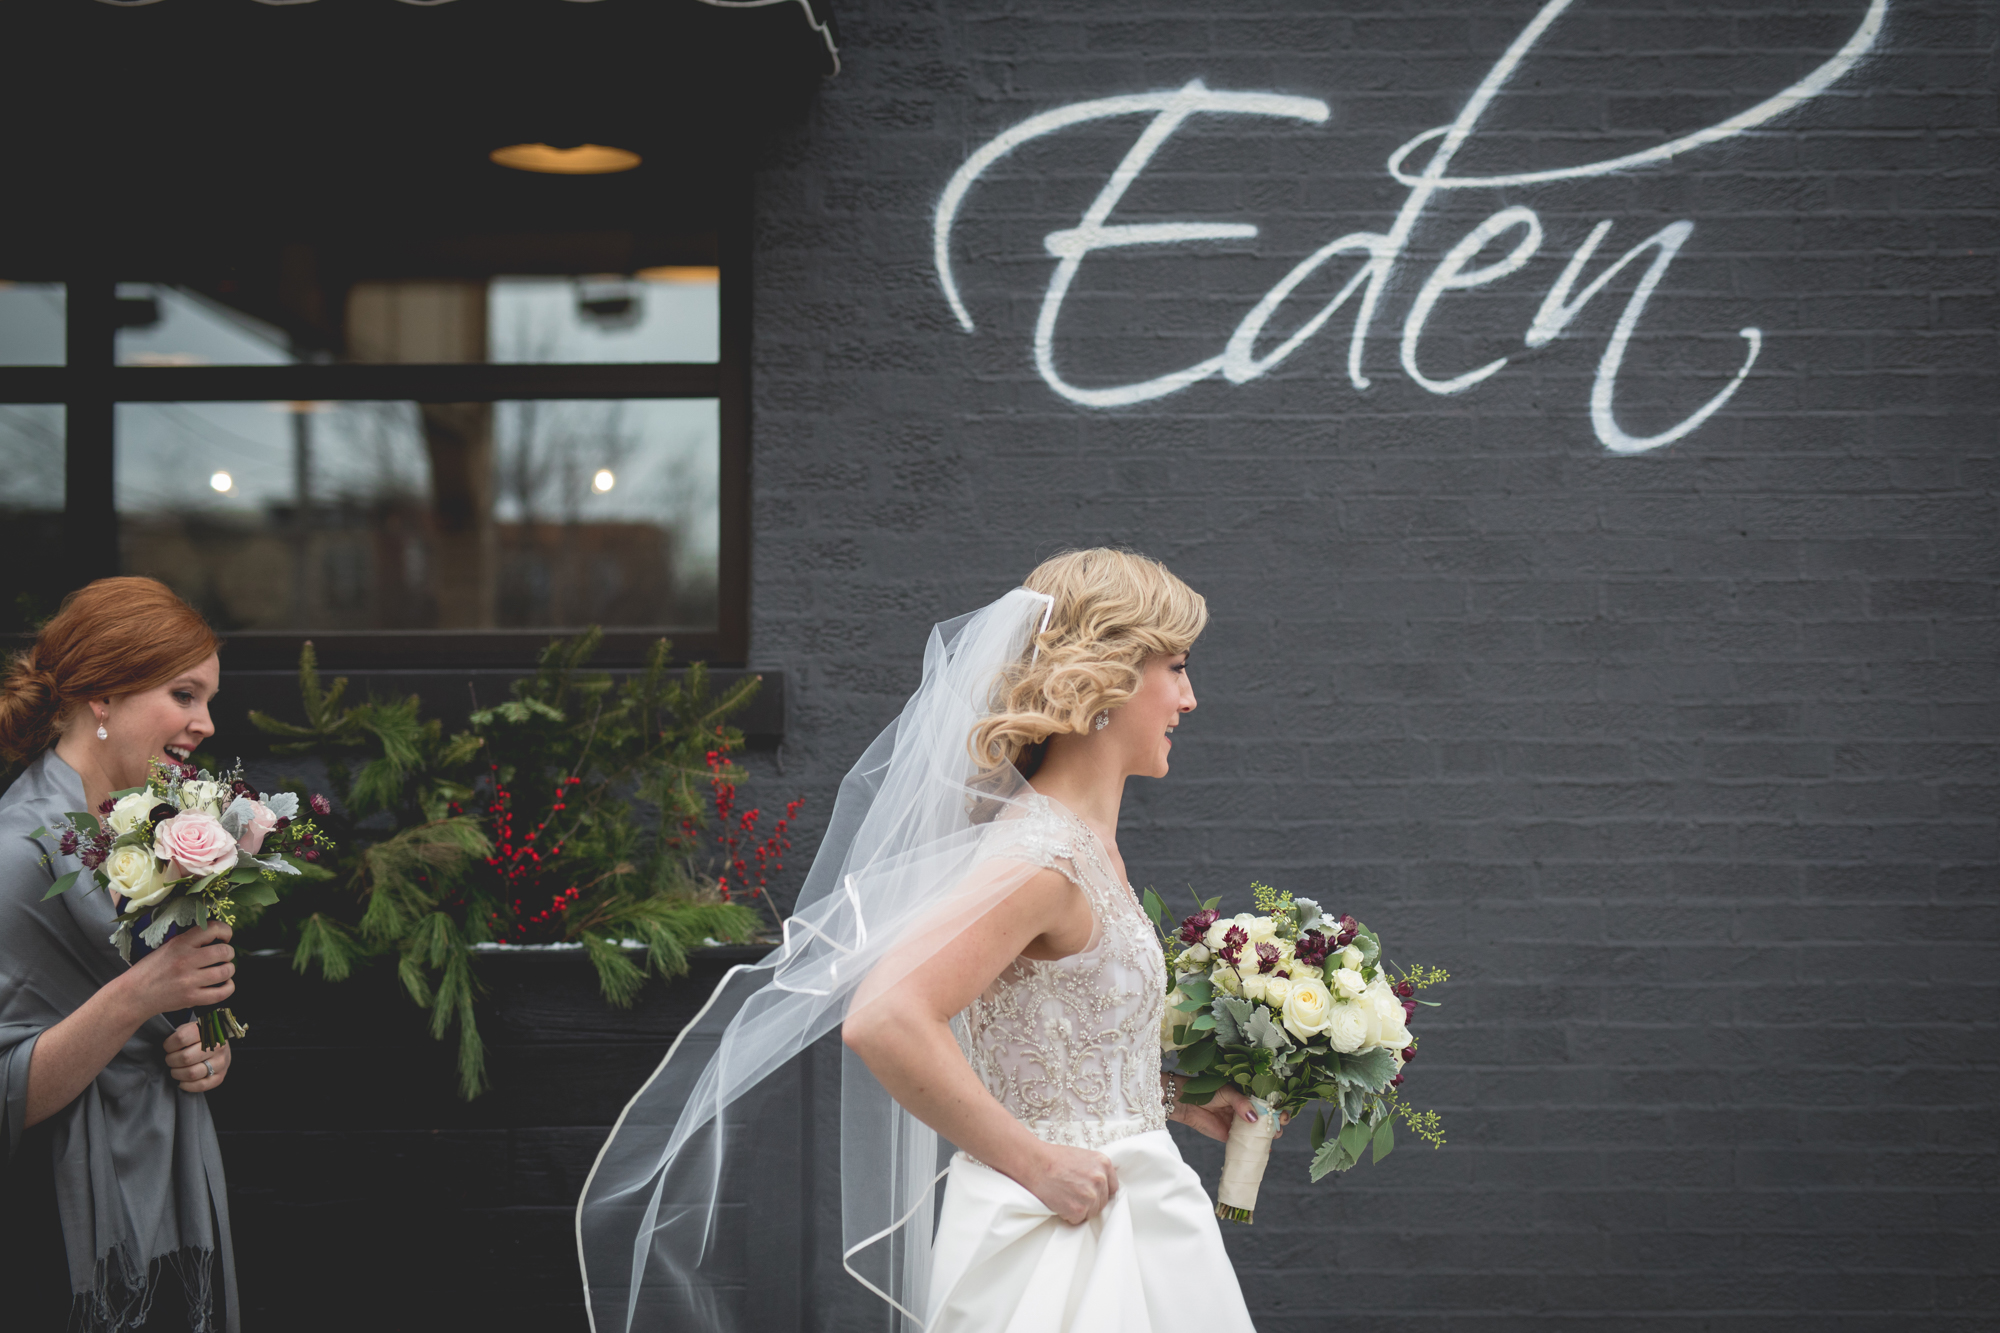 bride-walking-by-eden-chicago.jpg